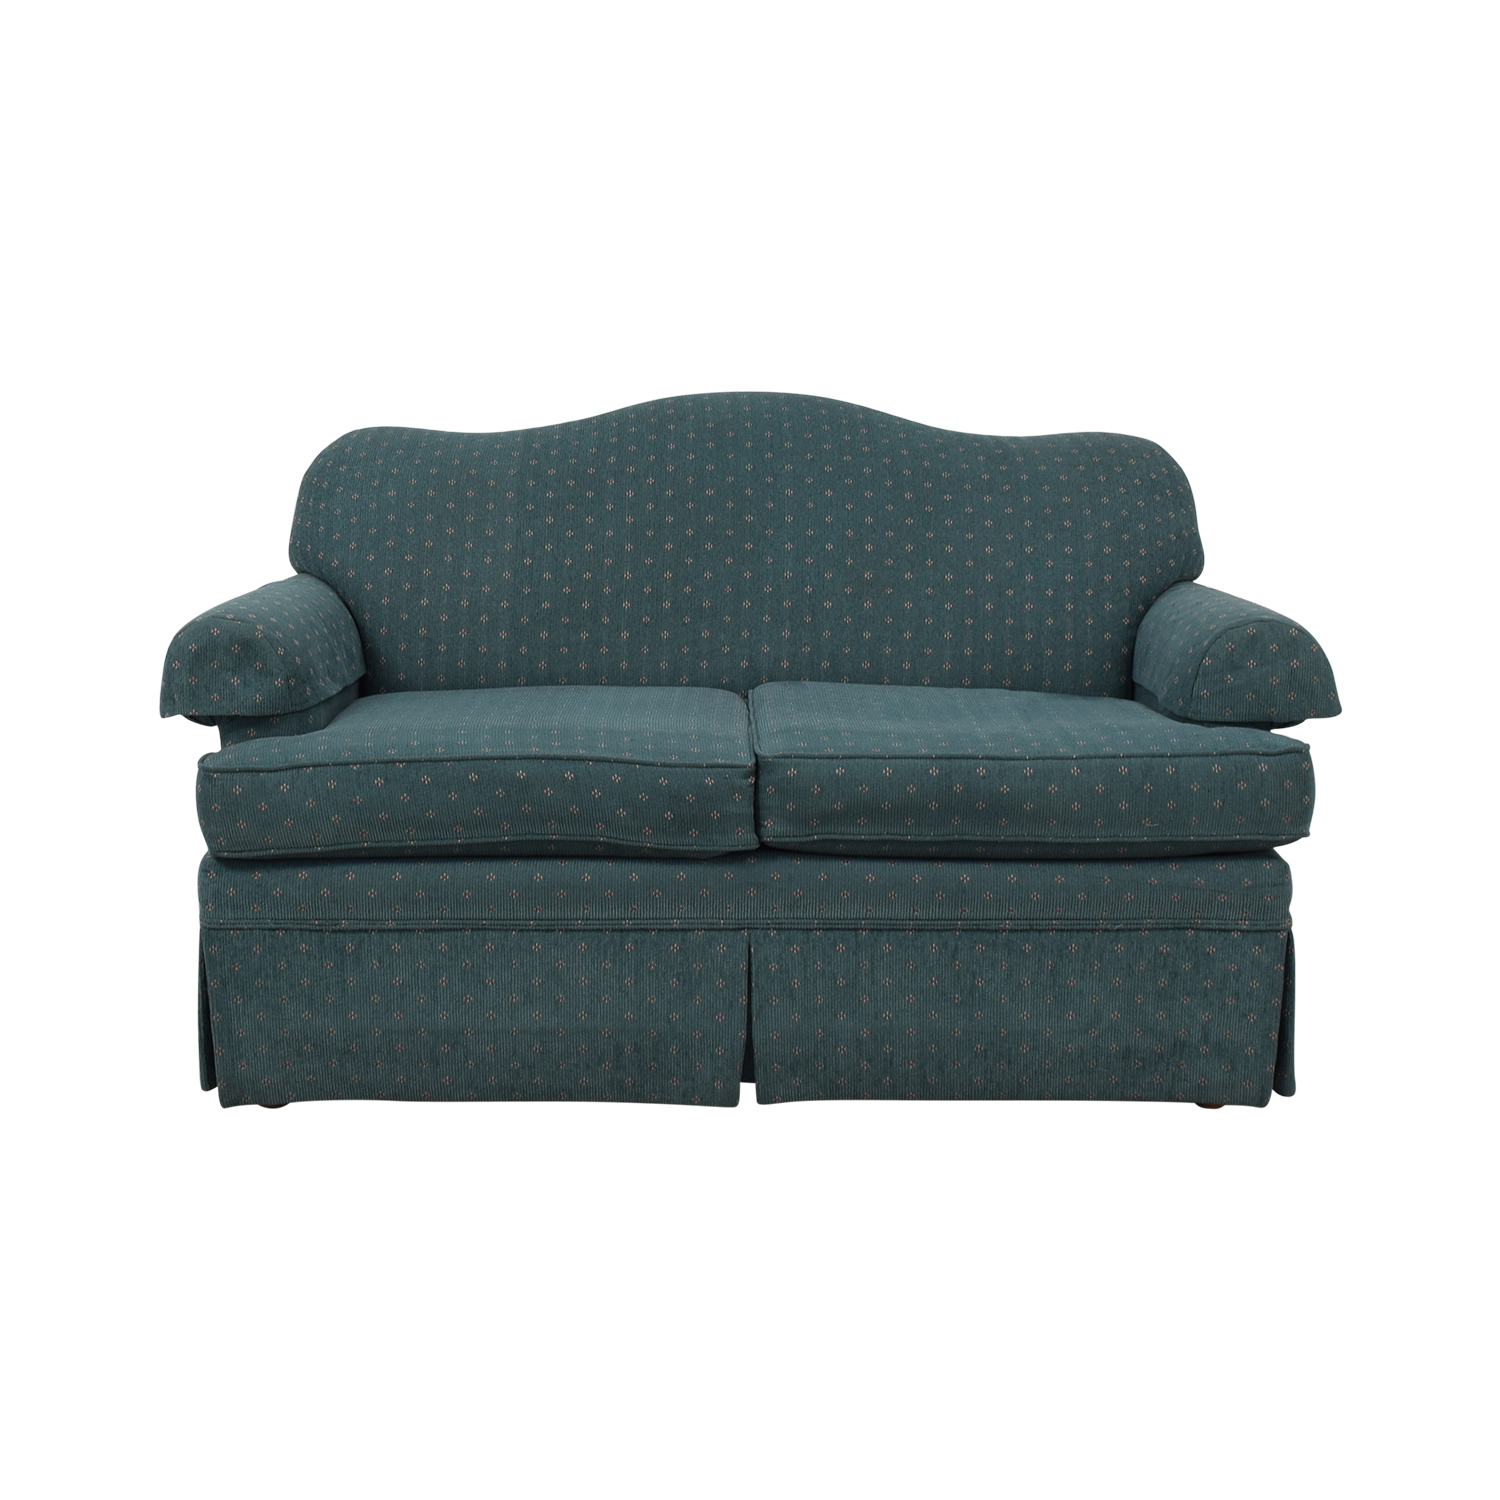 La-Z-Boy La-Z-Boy Patterned Loveseat dimensions